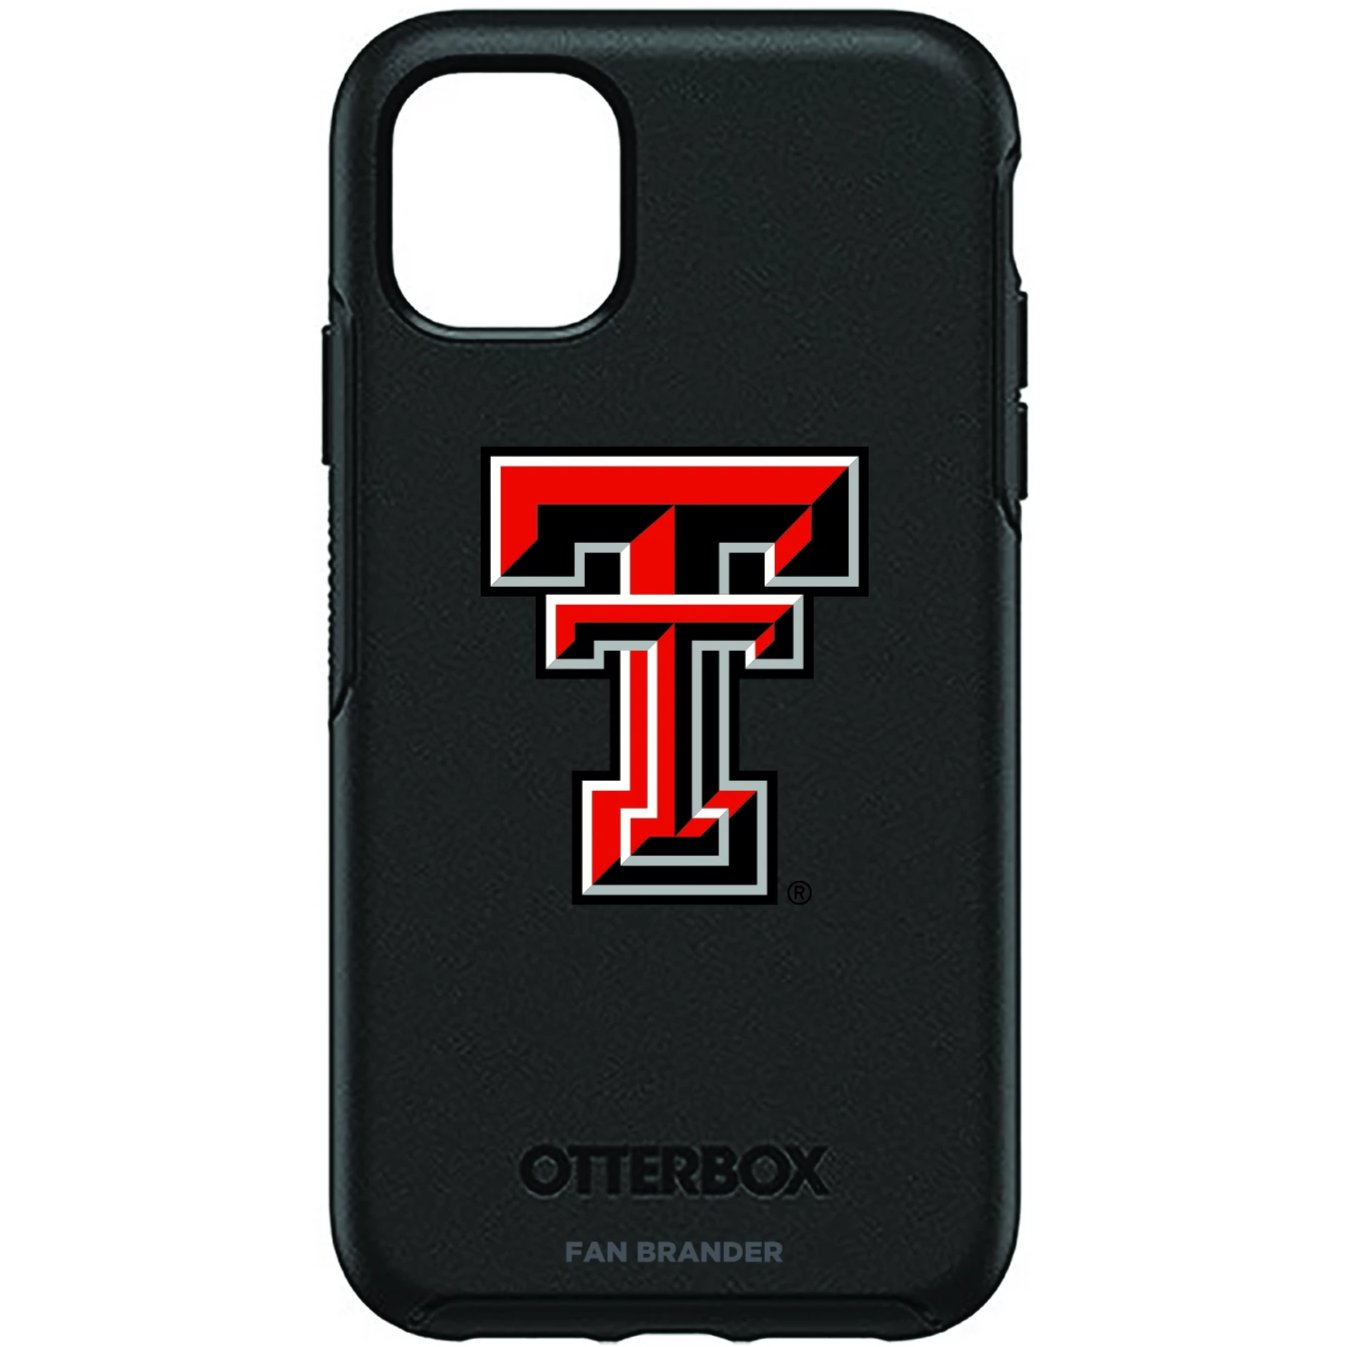 Texas Tech Red Raiders Otterbox Symmetry Case (for iPhone 11, Pro, Pro Max)